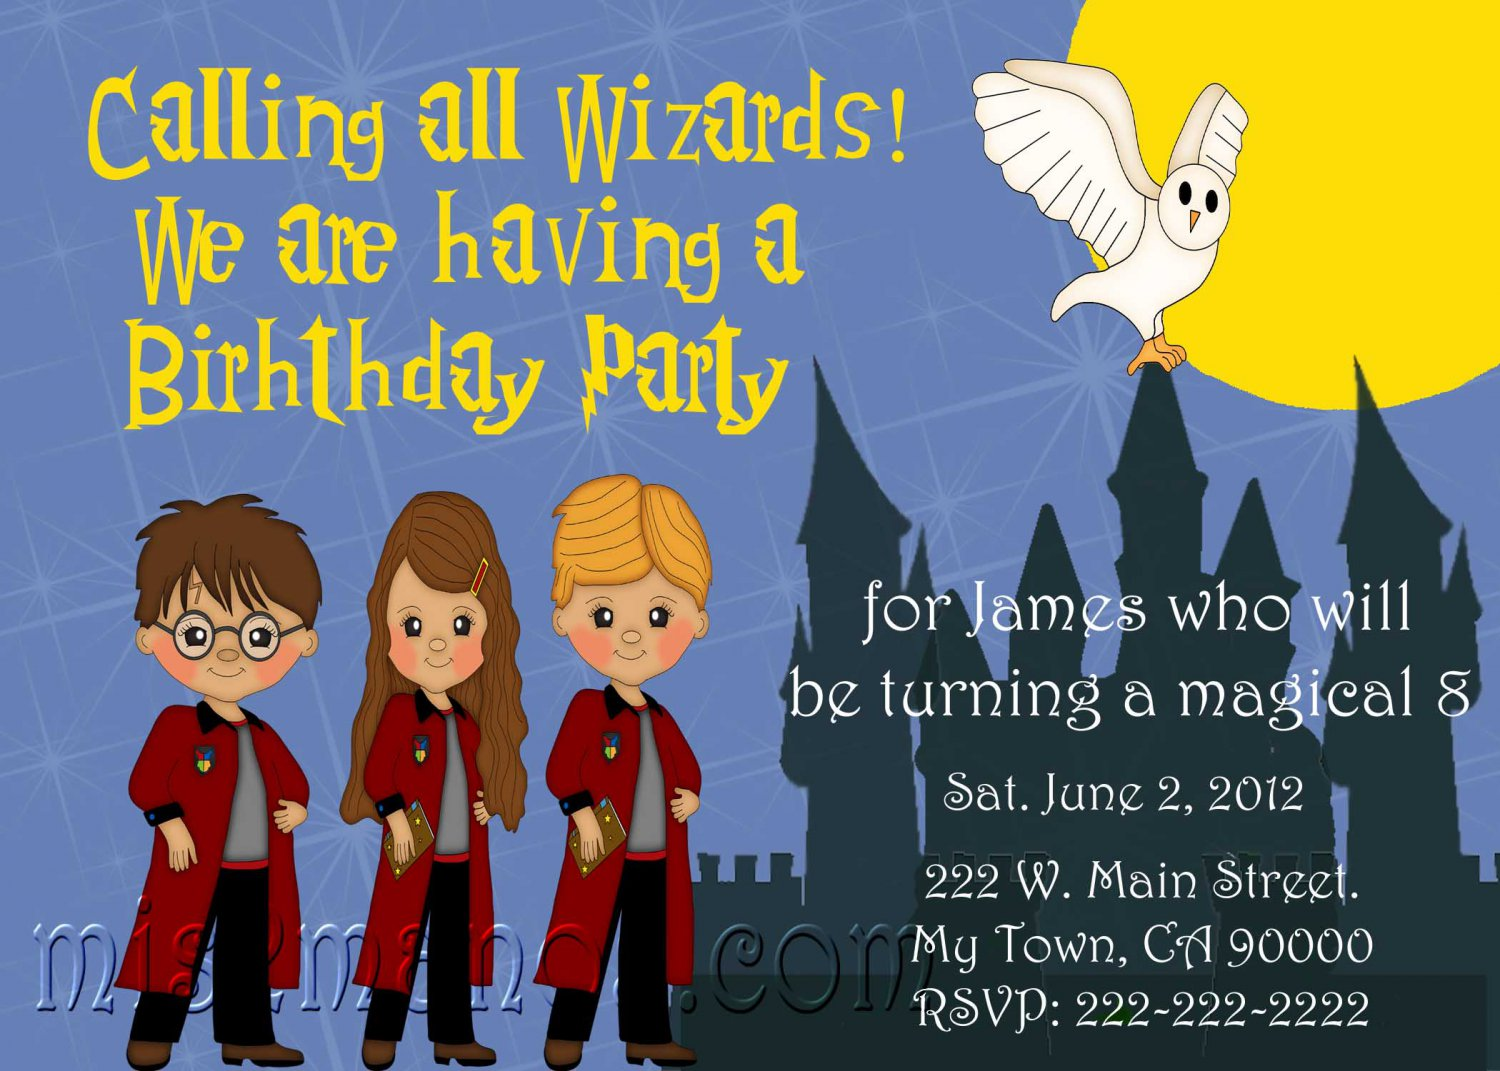 Harry Potter Inspired Invitation Party Invitations Printable Little Monster baby